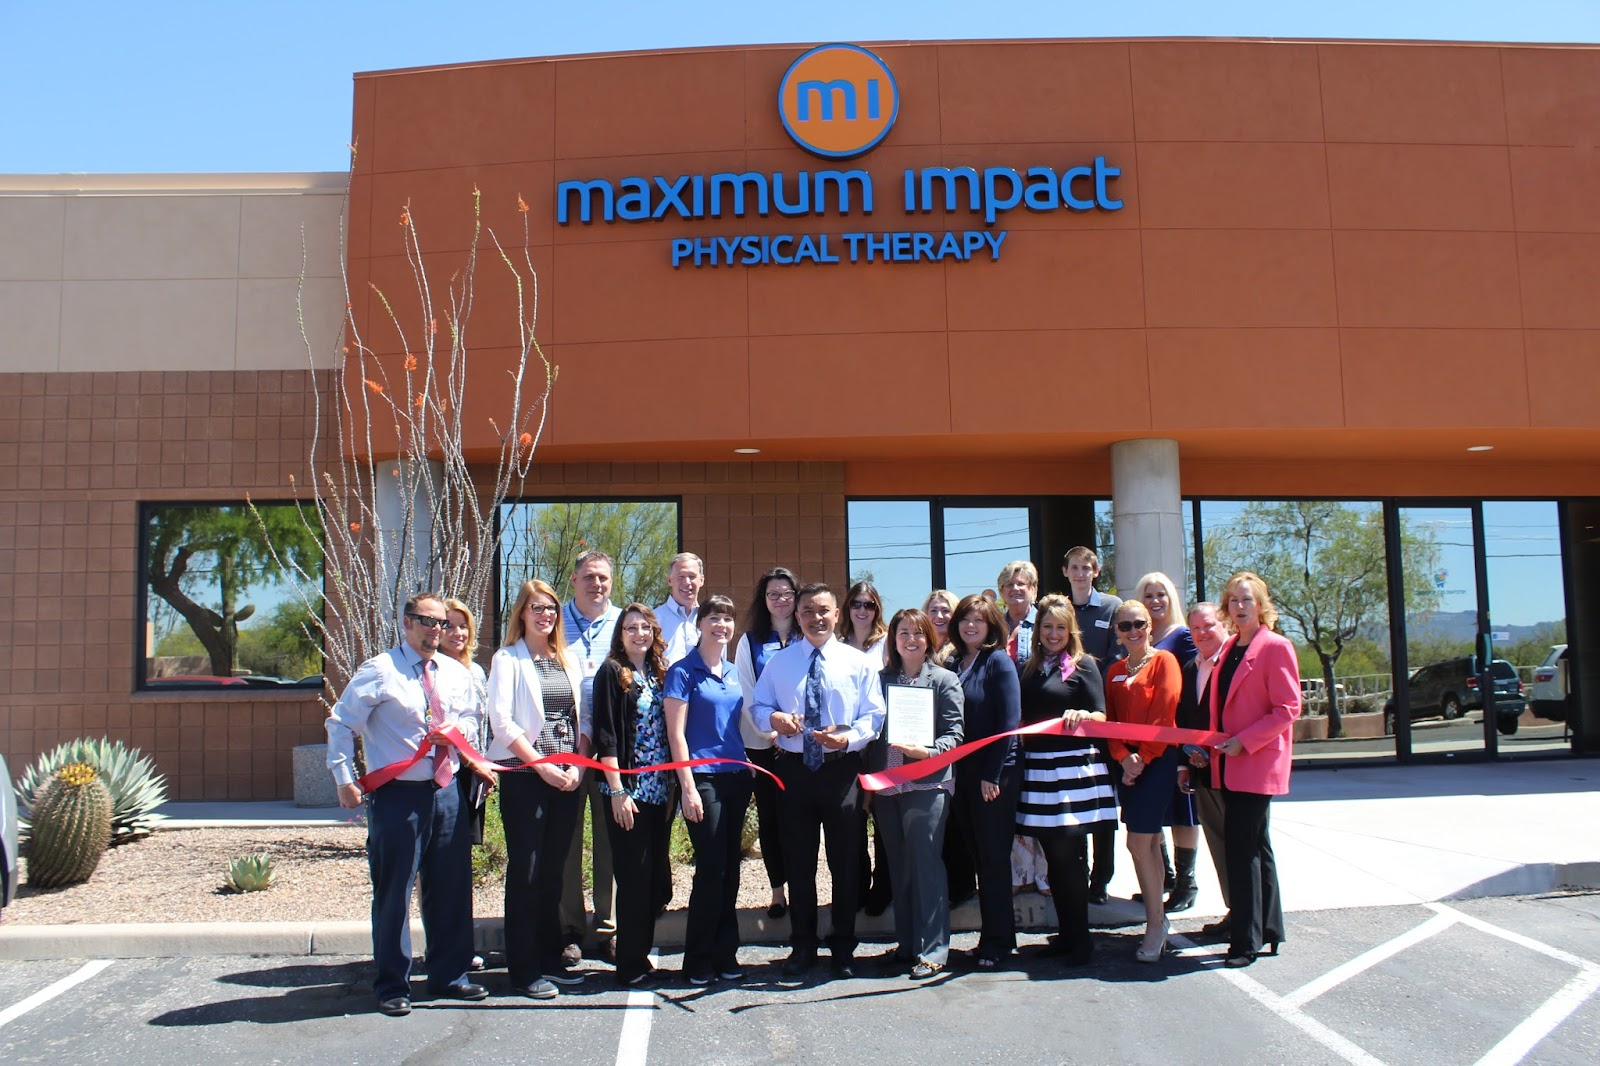 Congratulations to Maximum Impact Physical Therapy - Arizona, located at 6970 N. Oracle Road #130, on their 10th anniversary!  Maximum Impact Physical Therapy celebrated 10 years of serving the local community, helping thousands through advanced hands on physical therapy care. Maximum Impacts goal is to continue to transform lives by reducing pain, restoring function, and returning people to the quality of life that they deserve.